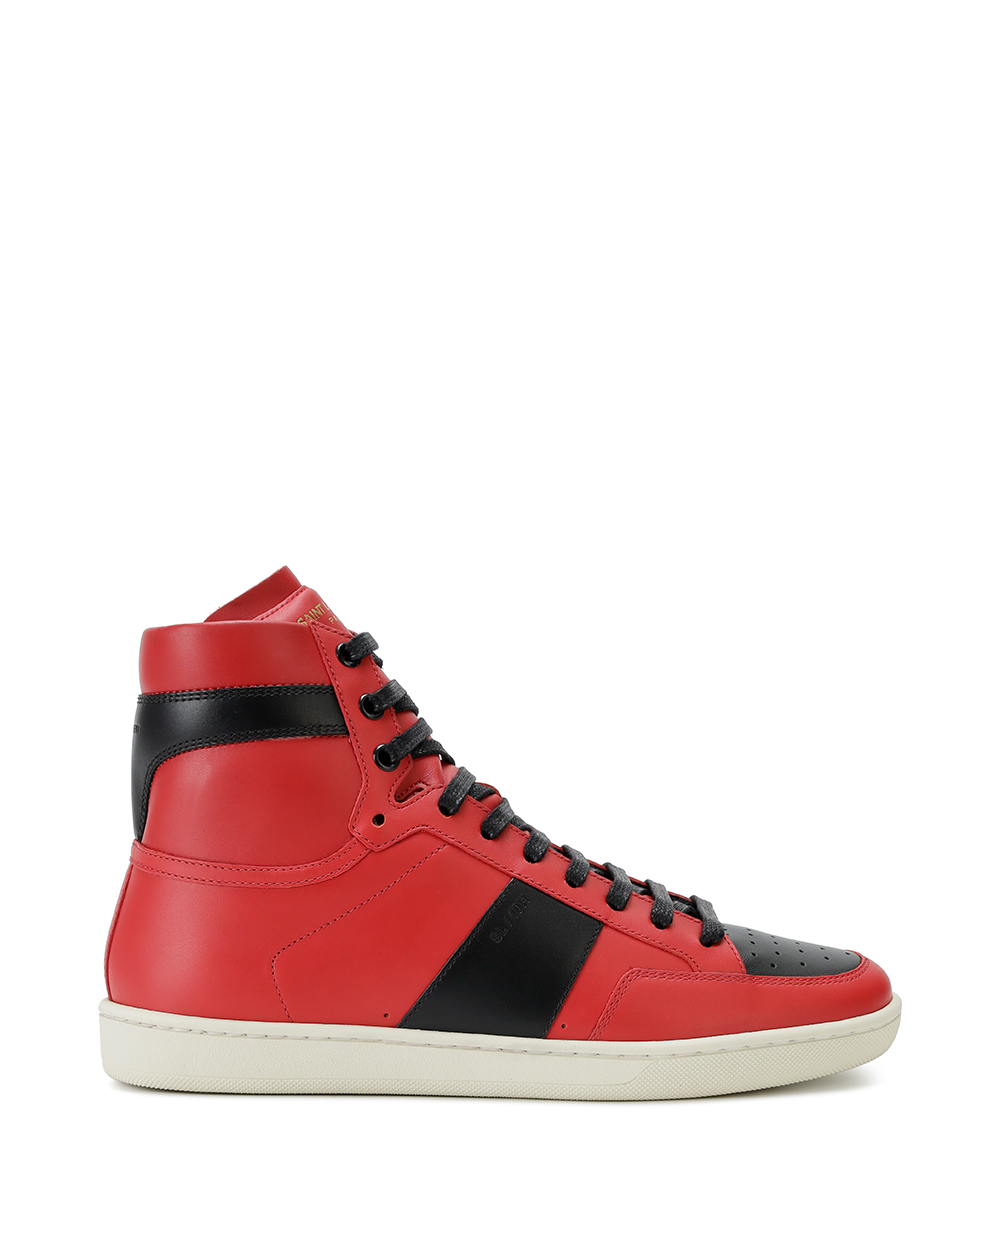 Signature Classic High-Top Sneakers